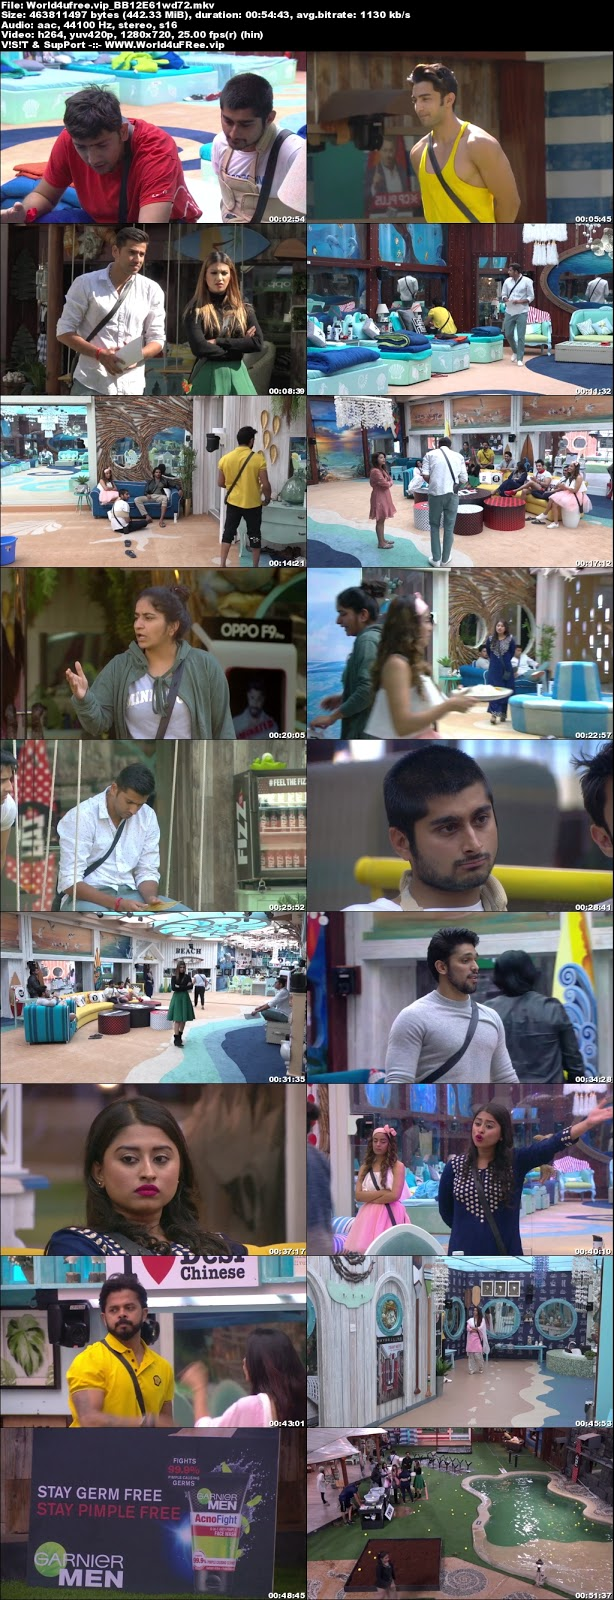 Bigg Boss 12 Episode 61 16 November 2018 720p WEBRip 400Mb x264 world4ufree.vip tv show Bigg Boss 12 Download Episode 61 16 november 2018 world4ufree.vip 400mb 720p HD  free download or watch online at world4ufree.vip